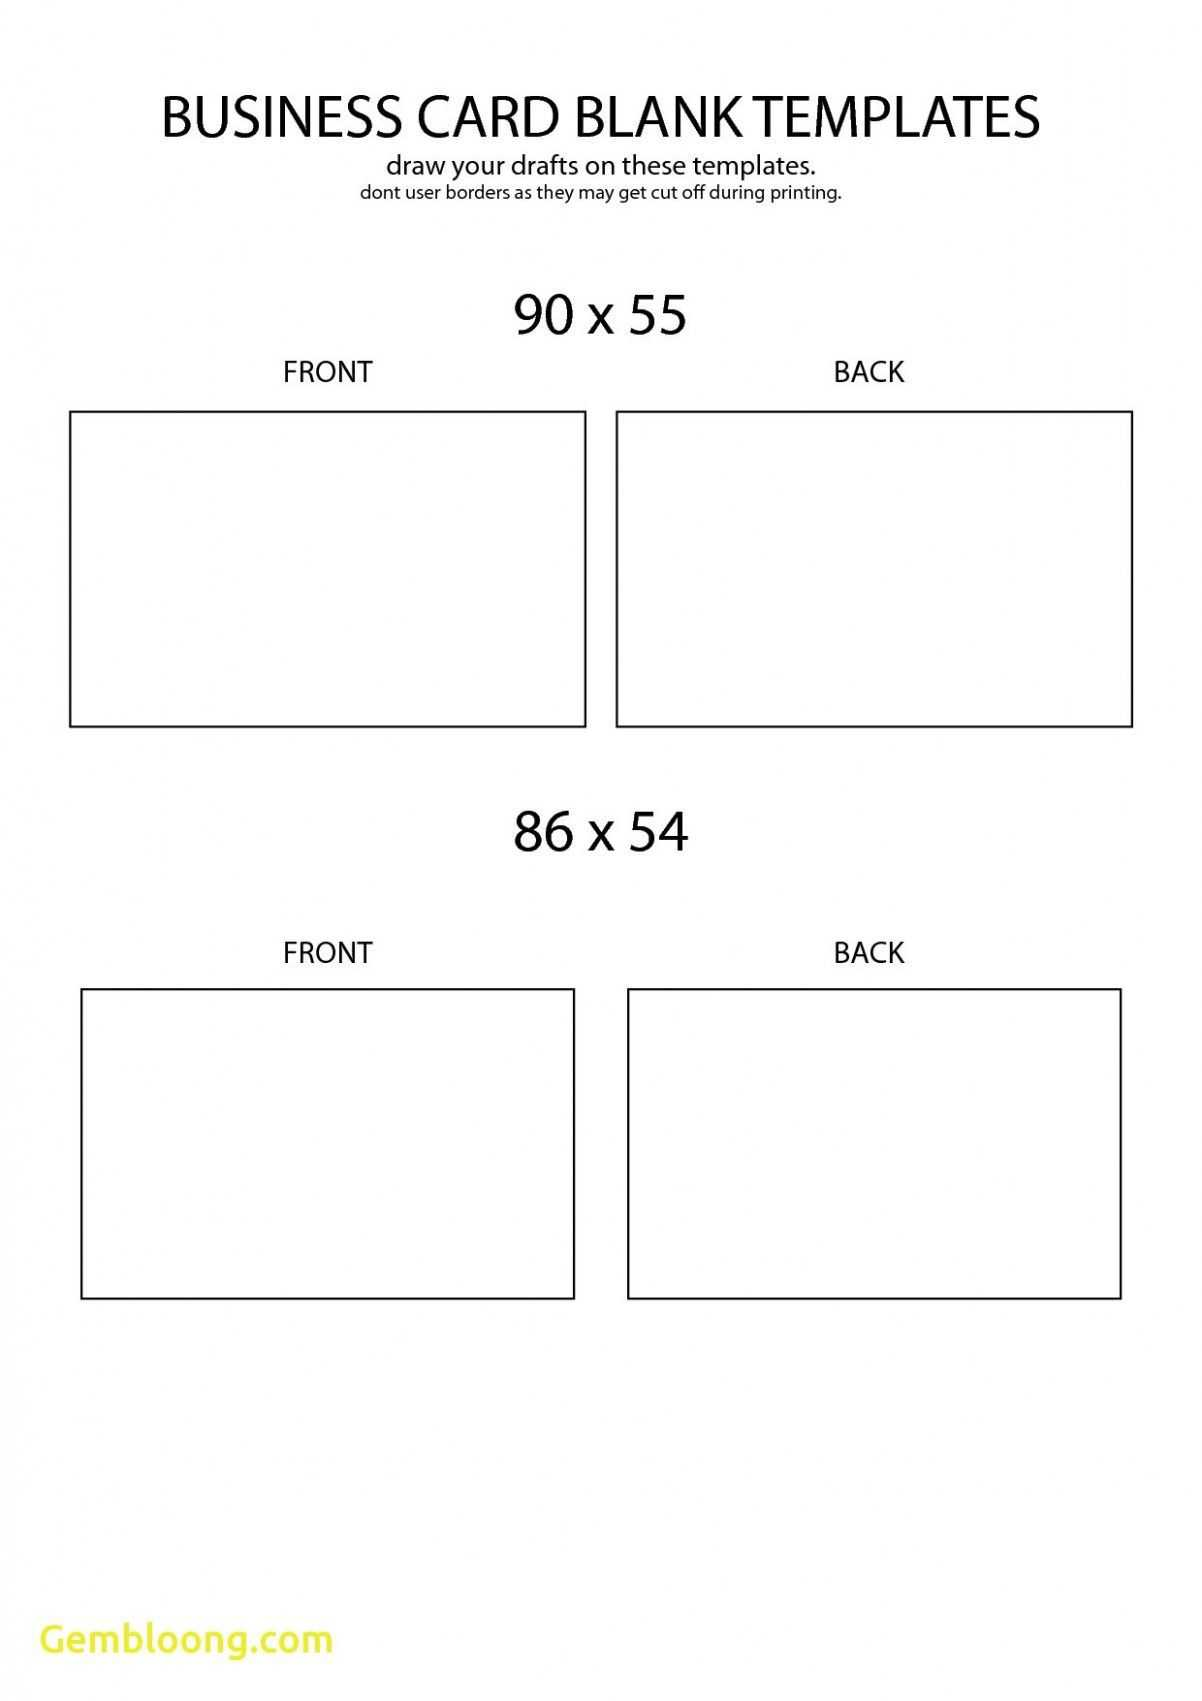 002 Blank Business Card Template Free Download Ideas pertaining to Business Card Size Template Psd